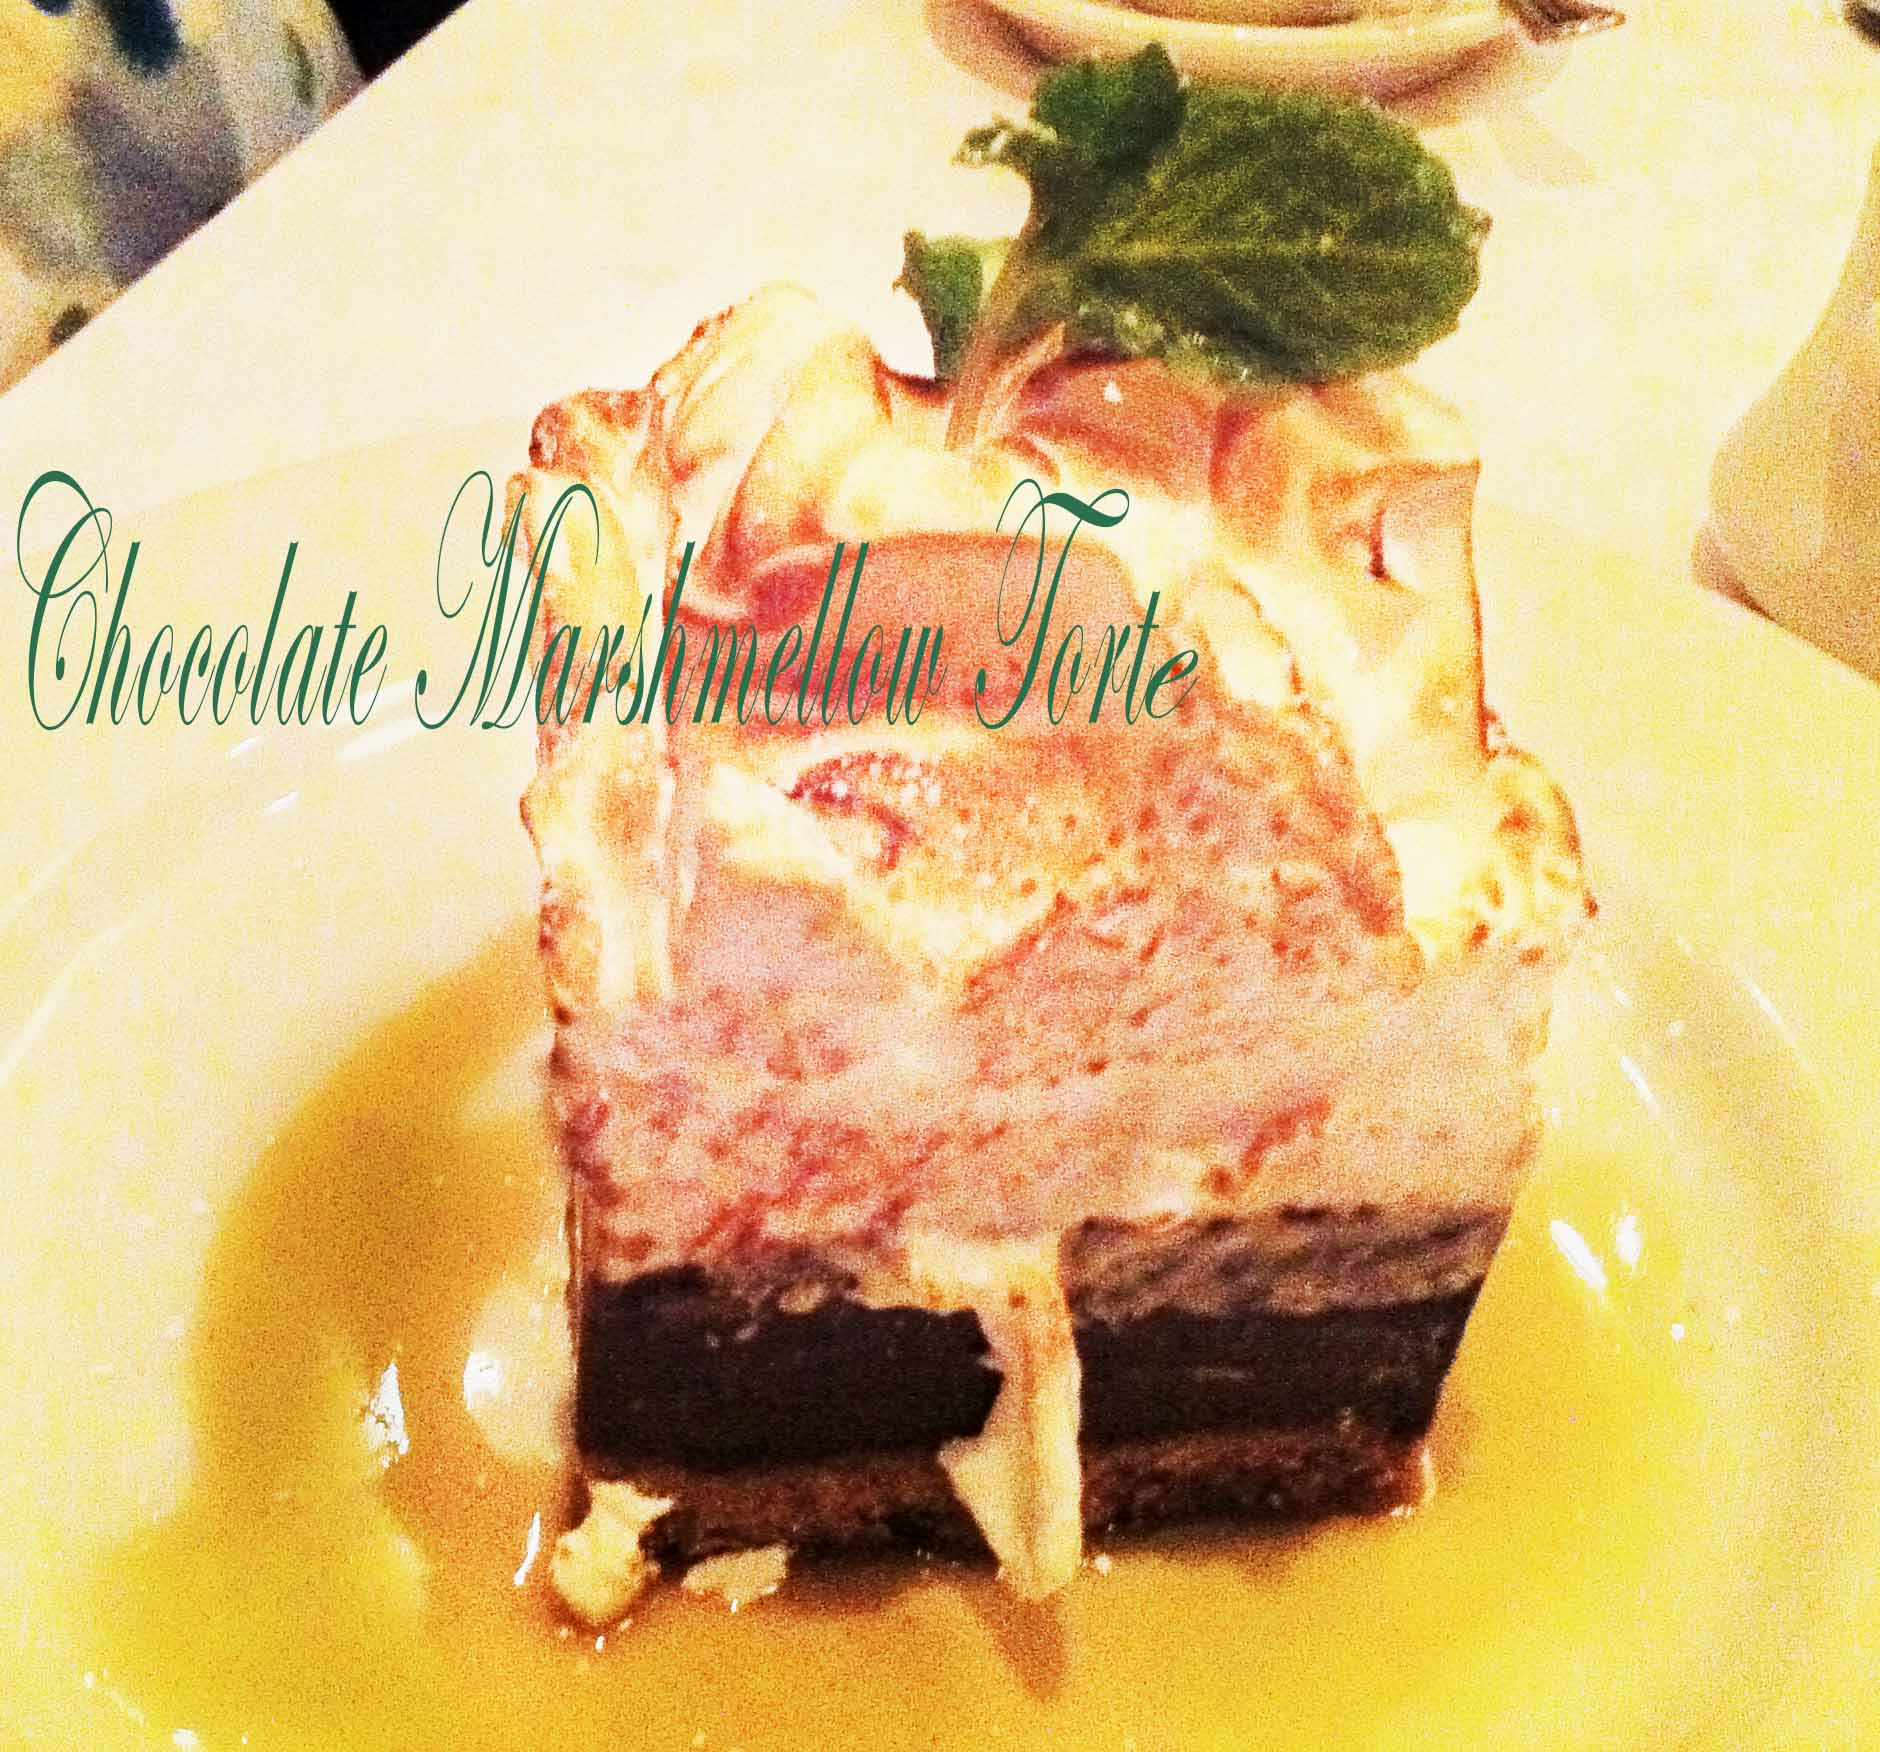 Chocolate Marshmallow Torte